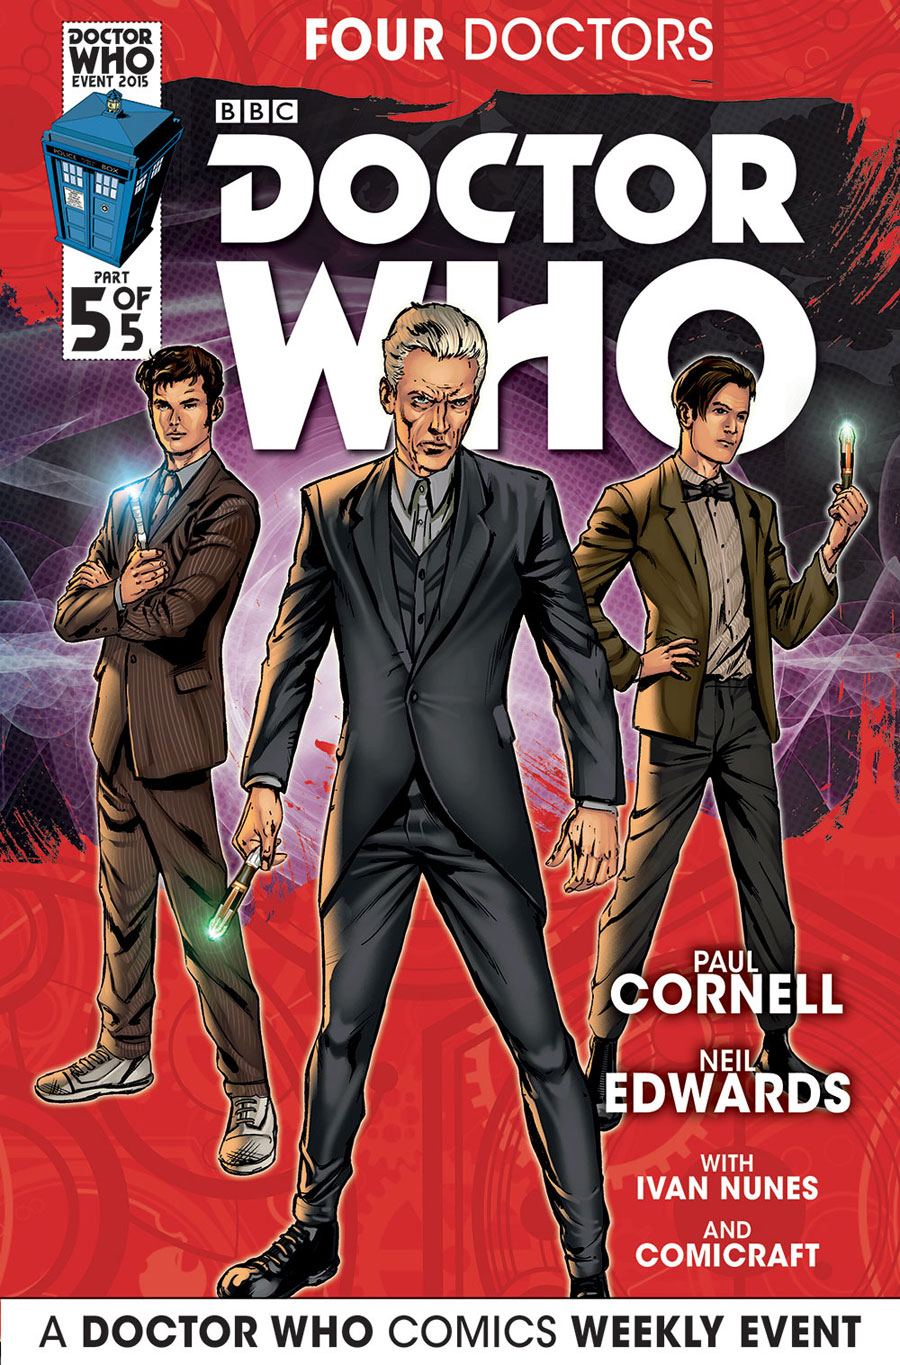 Titan-Comics-Doctor-Who-5-Four-Doctors-Doctor-Who-Brasil